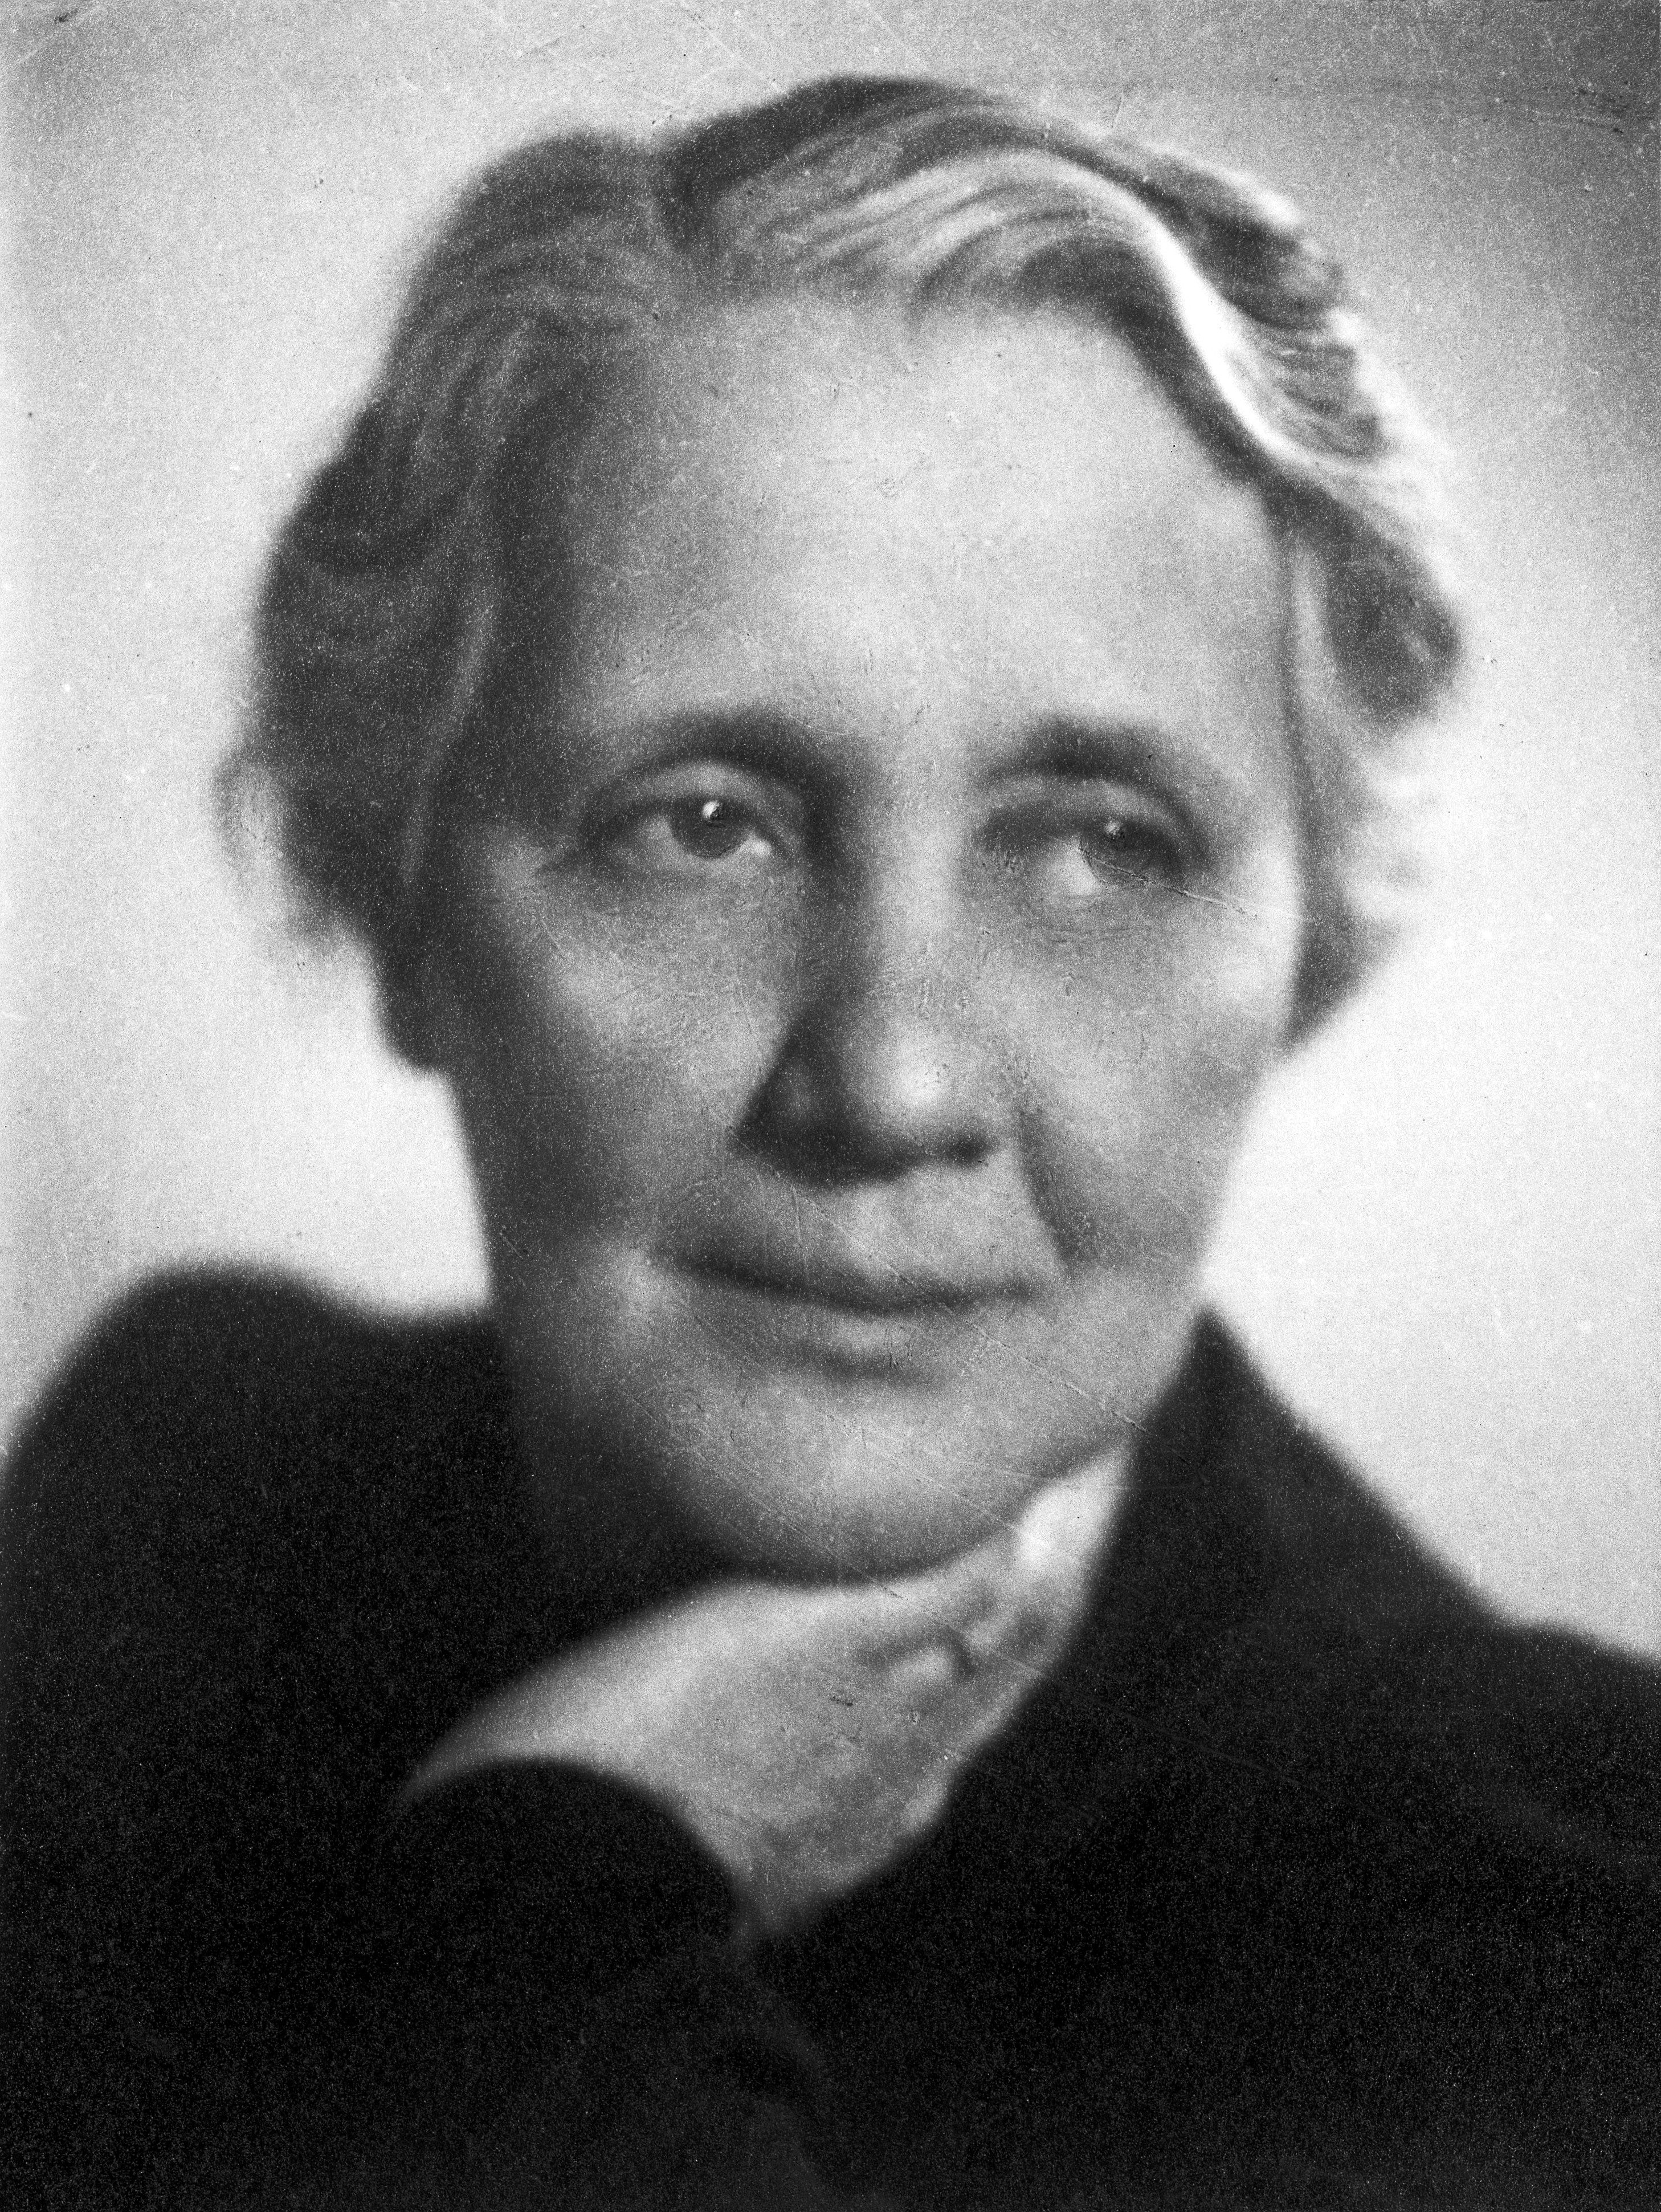 The ideas of Melanie Klein and Object Relations Theory